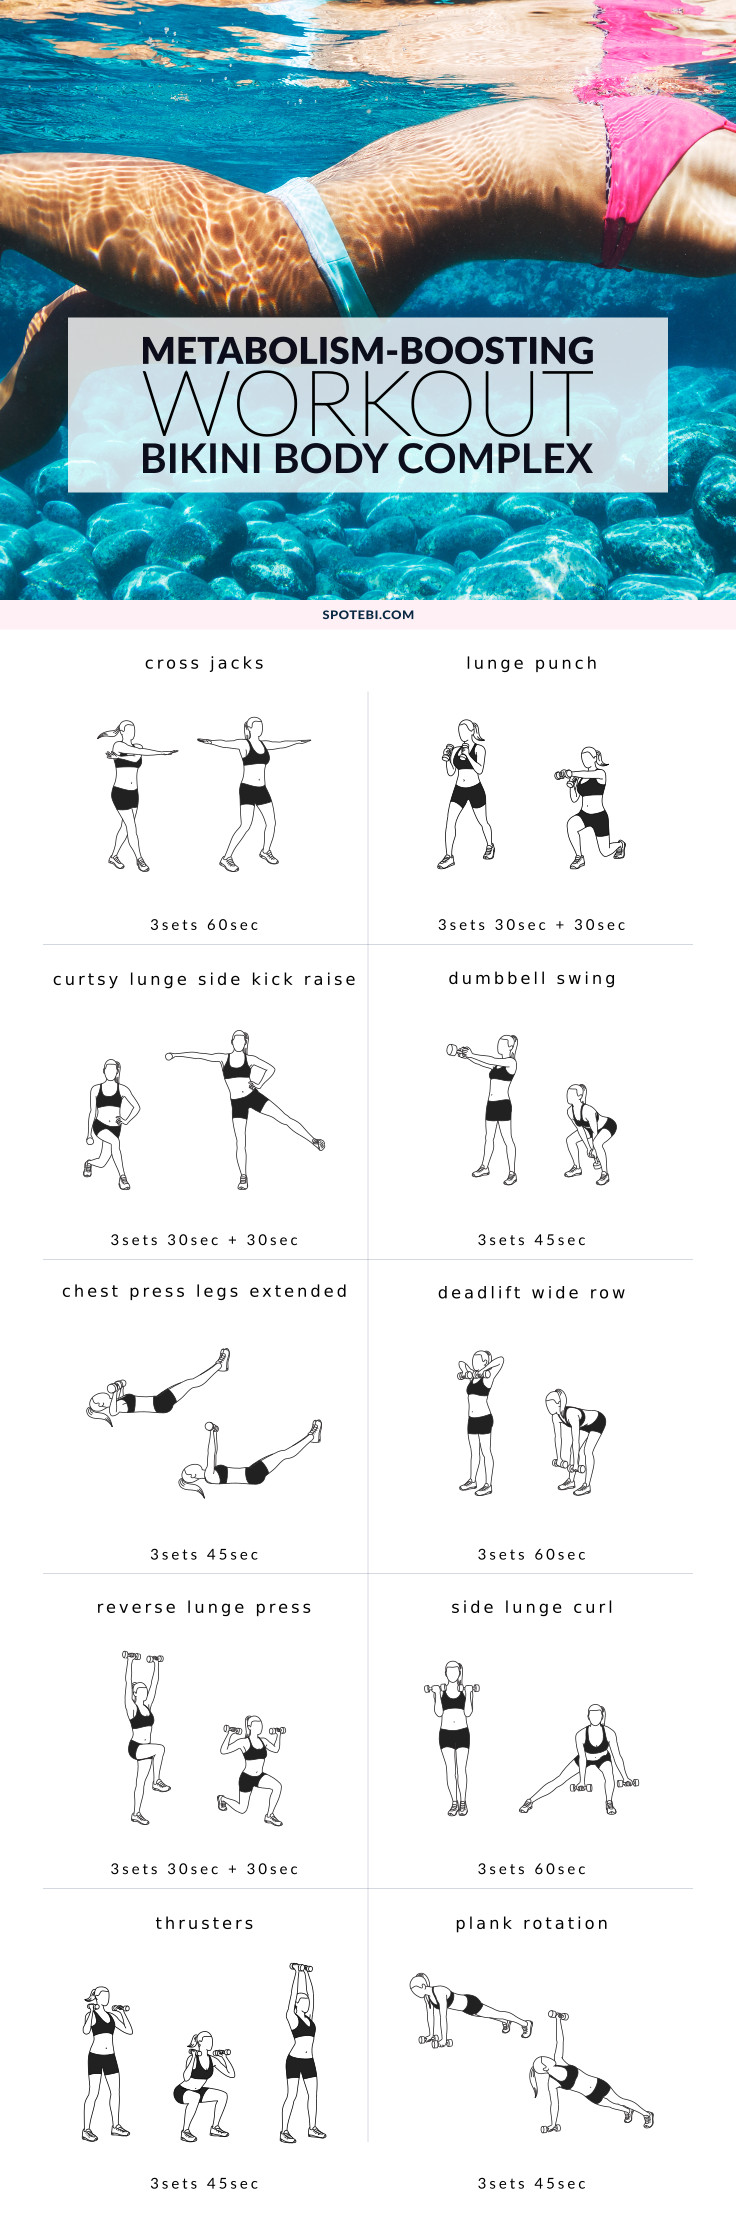 Full Body Workout For Women Metabolism Boosting Routine